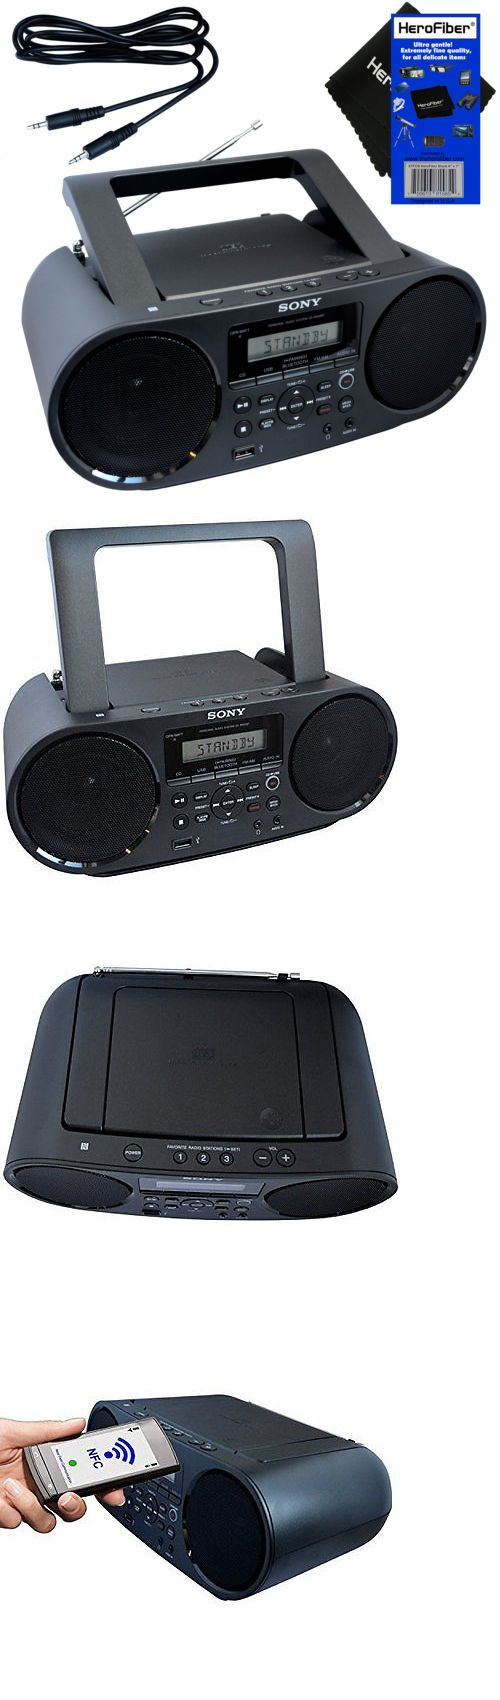 Small Cd Player For Bedroom 17 Best Ideas About Boombox On Pinterest Ll Cool J Old School